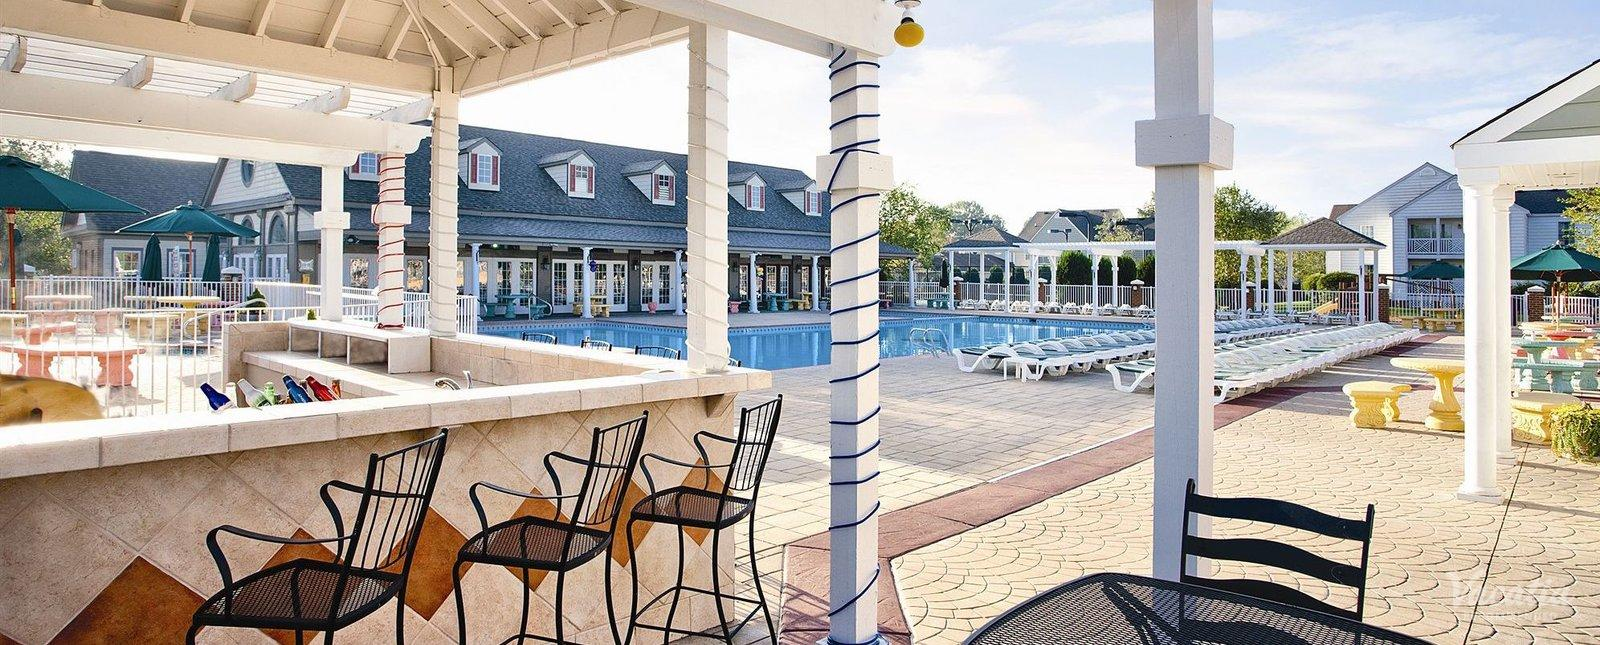 Wyndham Kingsgate Williamsburg Outdoor Pool